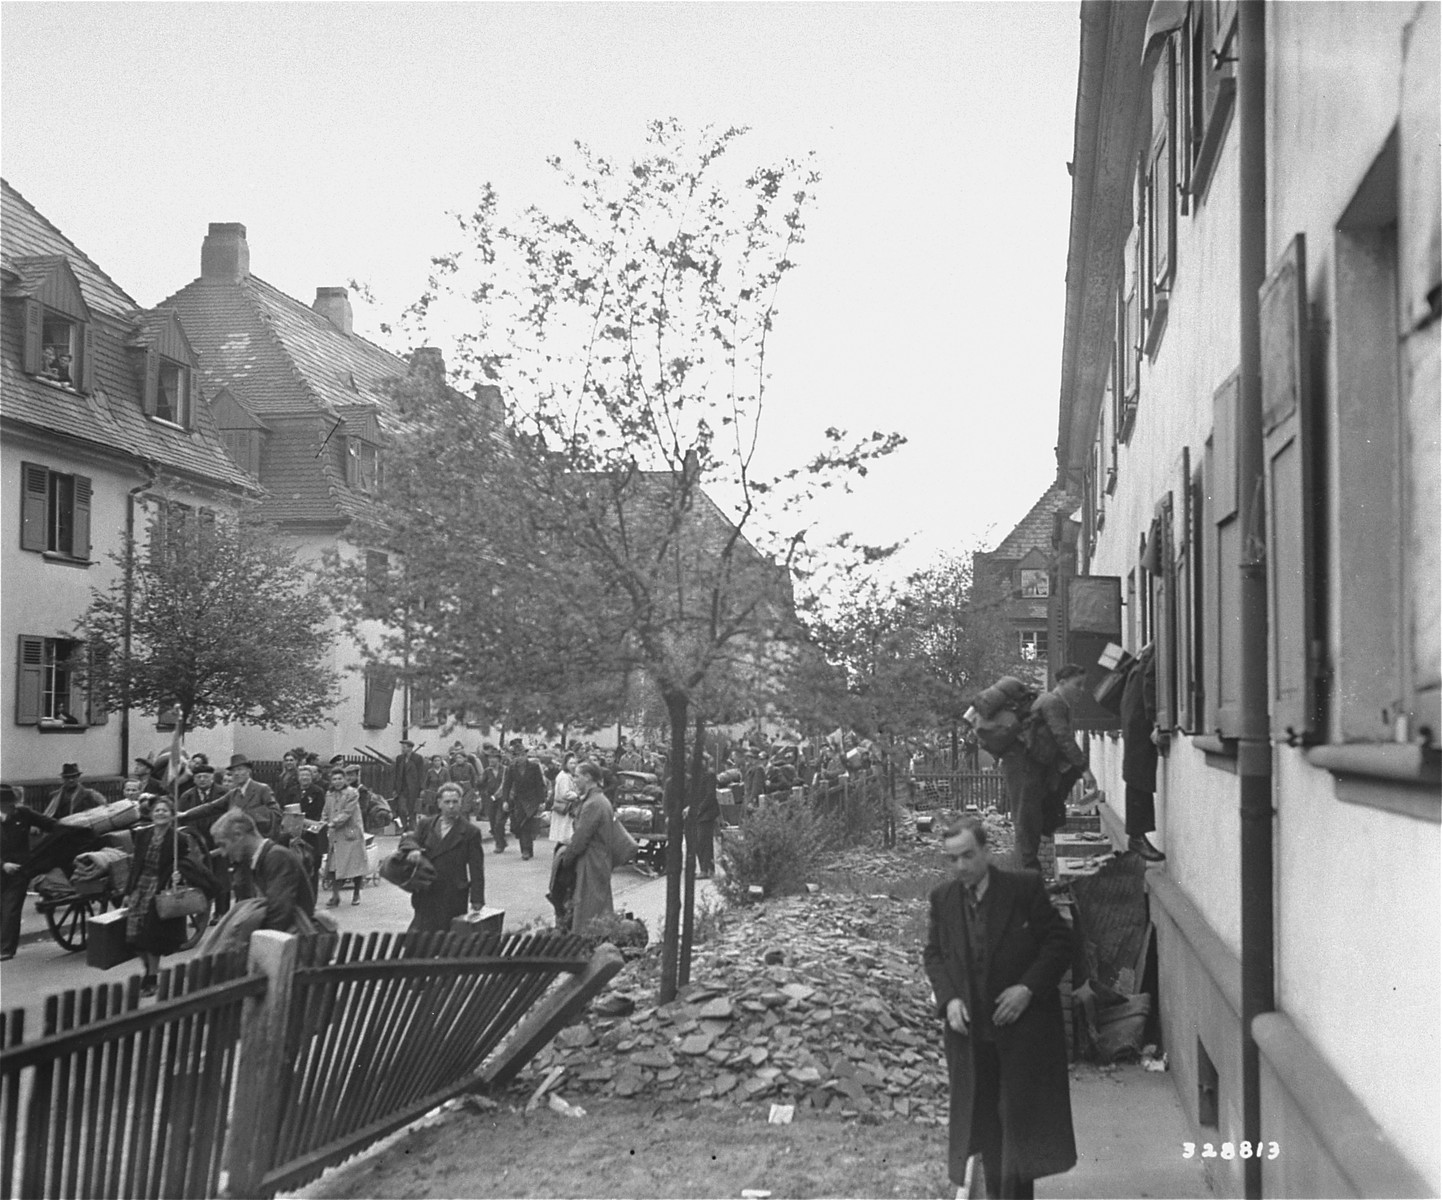 German residents of Mannheim are expelled from their homes to make room for displaced persons, when the existing DP camp proved inadequate to accomodate the thousands of prisoners being liberated by advancing Allied troops.